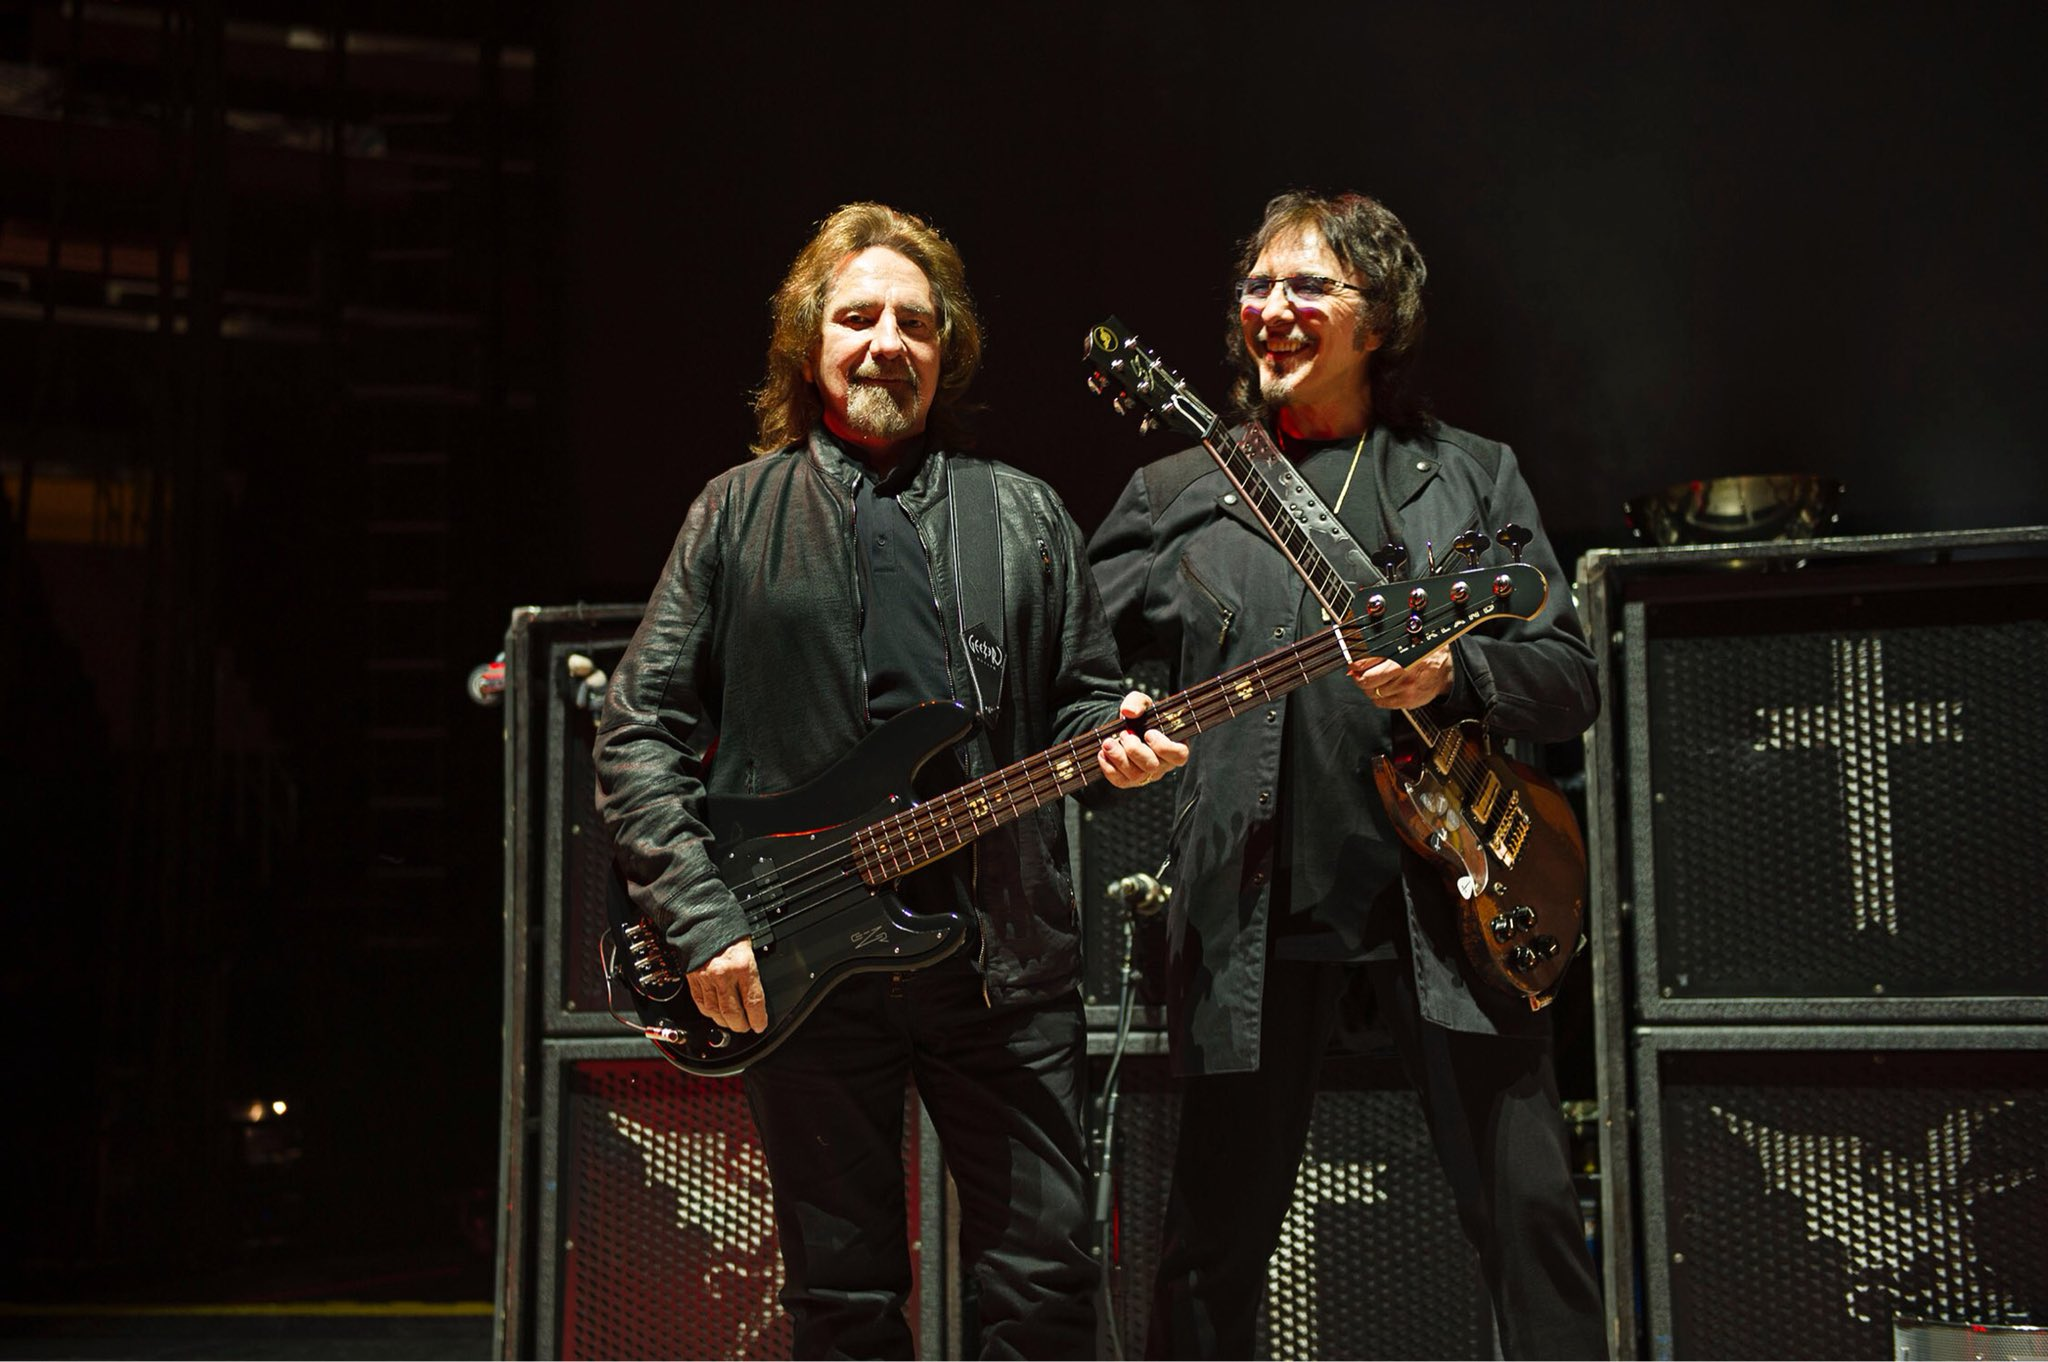 Happy Birthday to my dear friend Geezer Butler. The best bass player & lyricist in the world!!! Love ya mate.